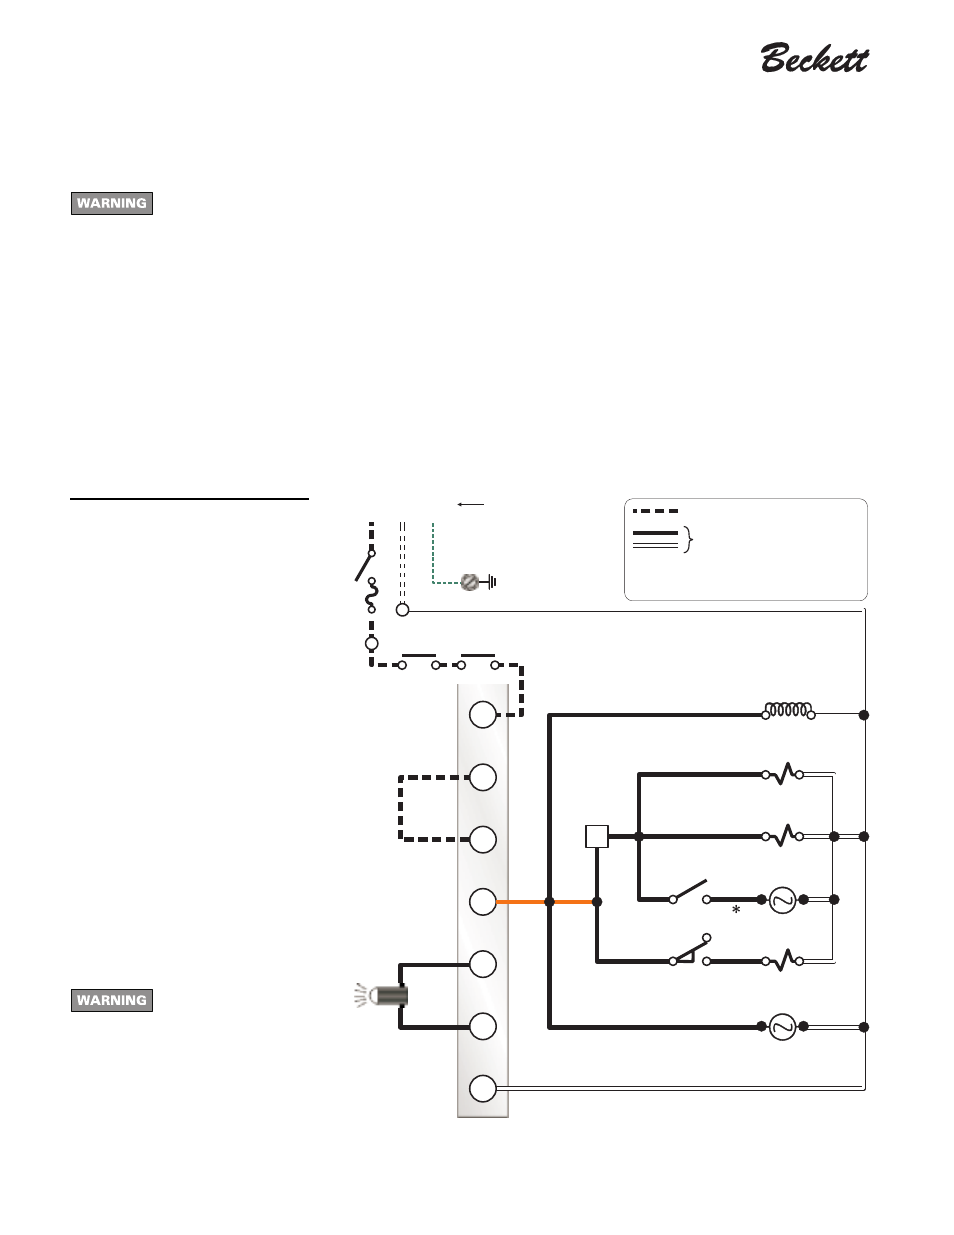 Beckett Burner Wiring Diagram Manual Guide